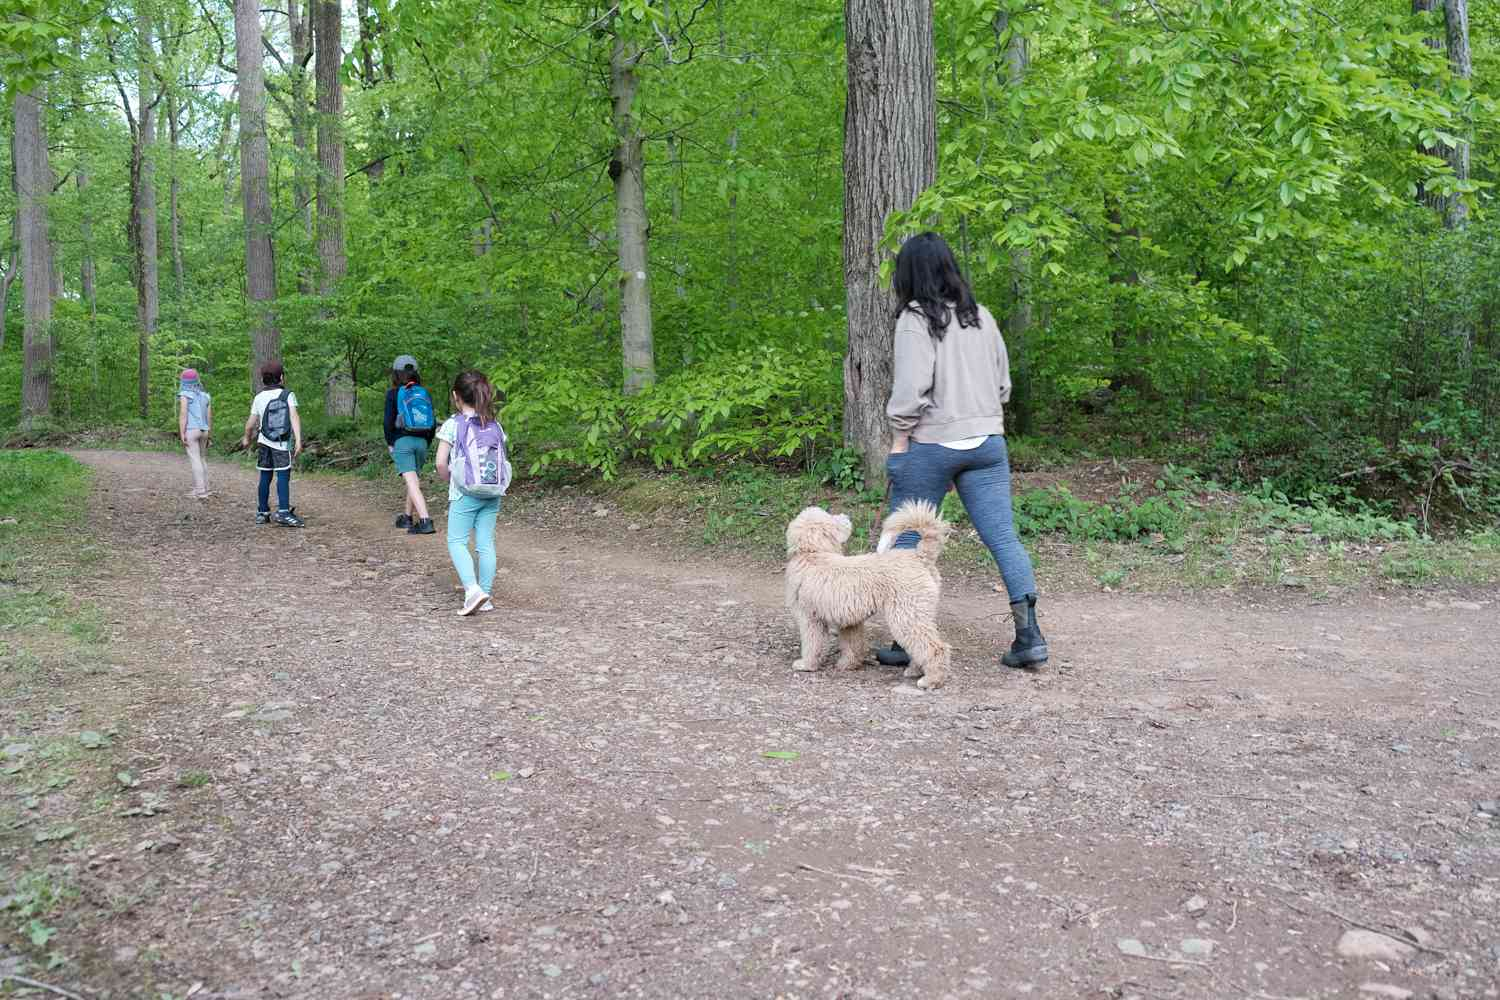 group of kids and dog owner, with doodle, walk on dirt path into forest